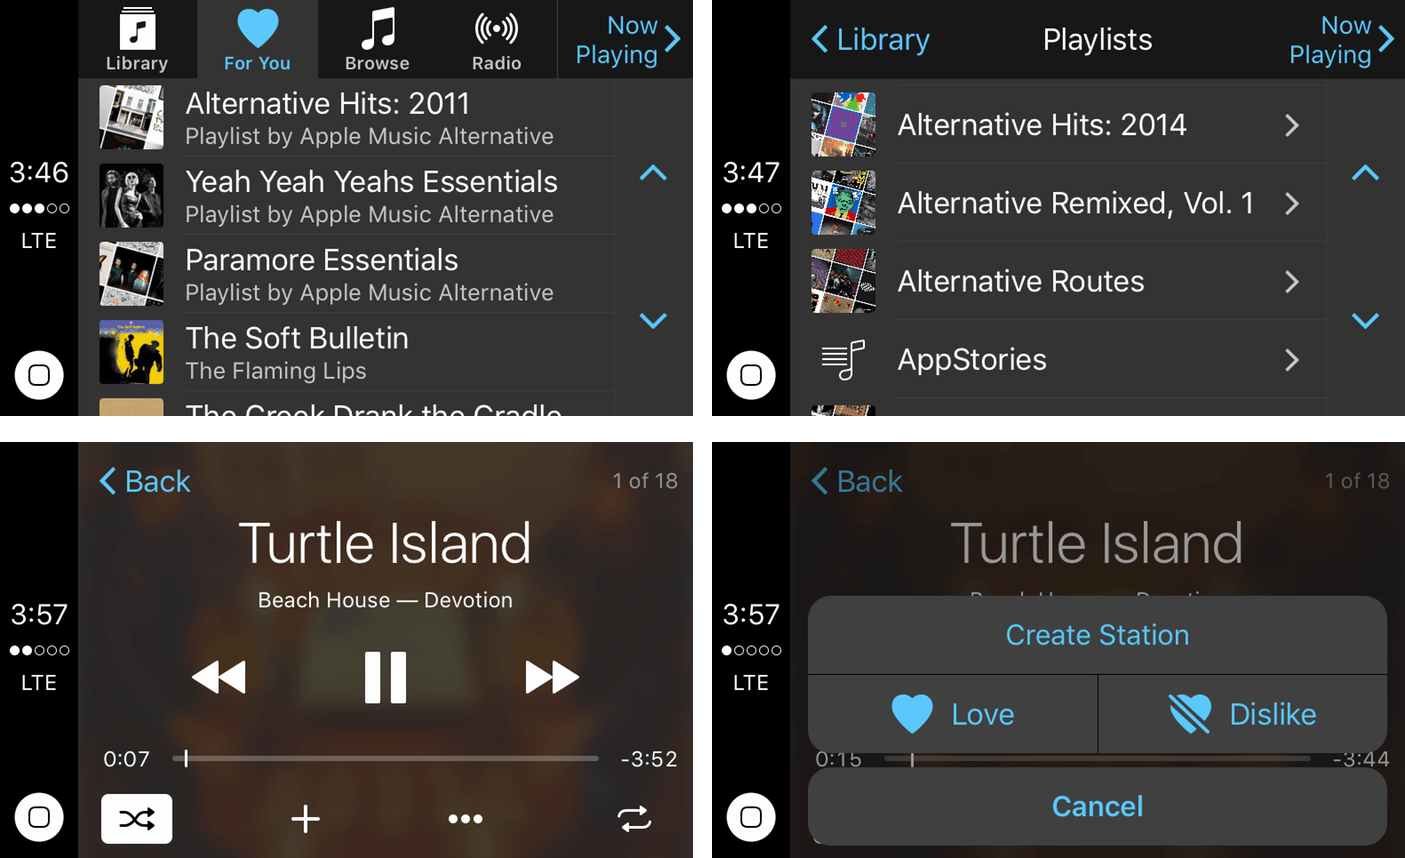 A surprising number of the features of Apple's iOS Music app are available via CarPlay.